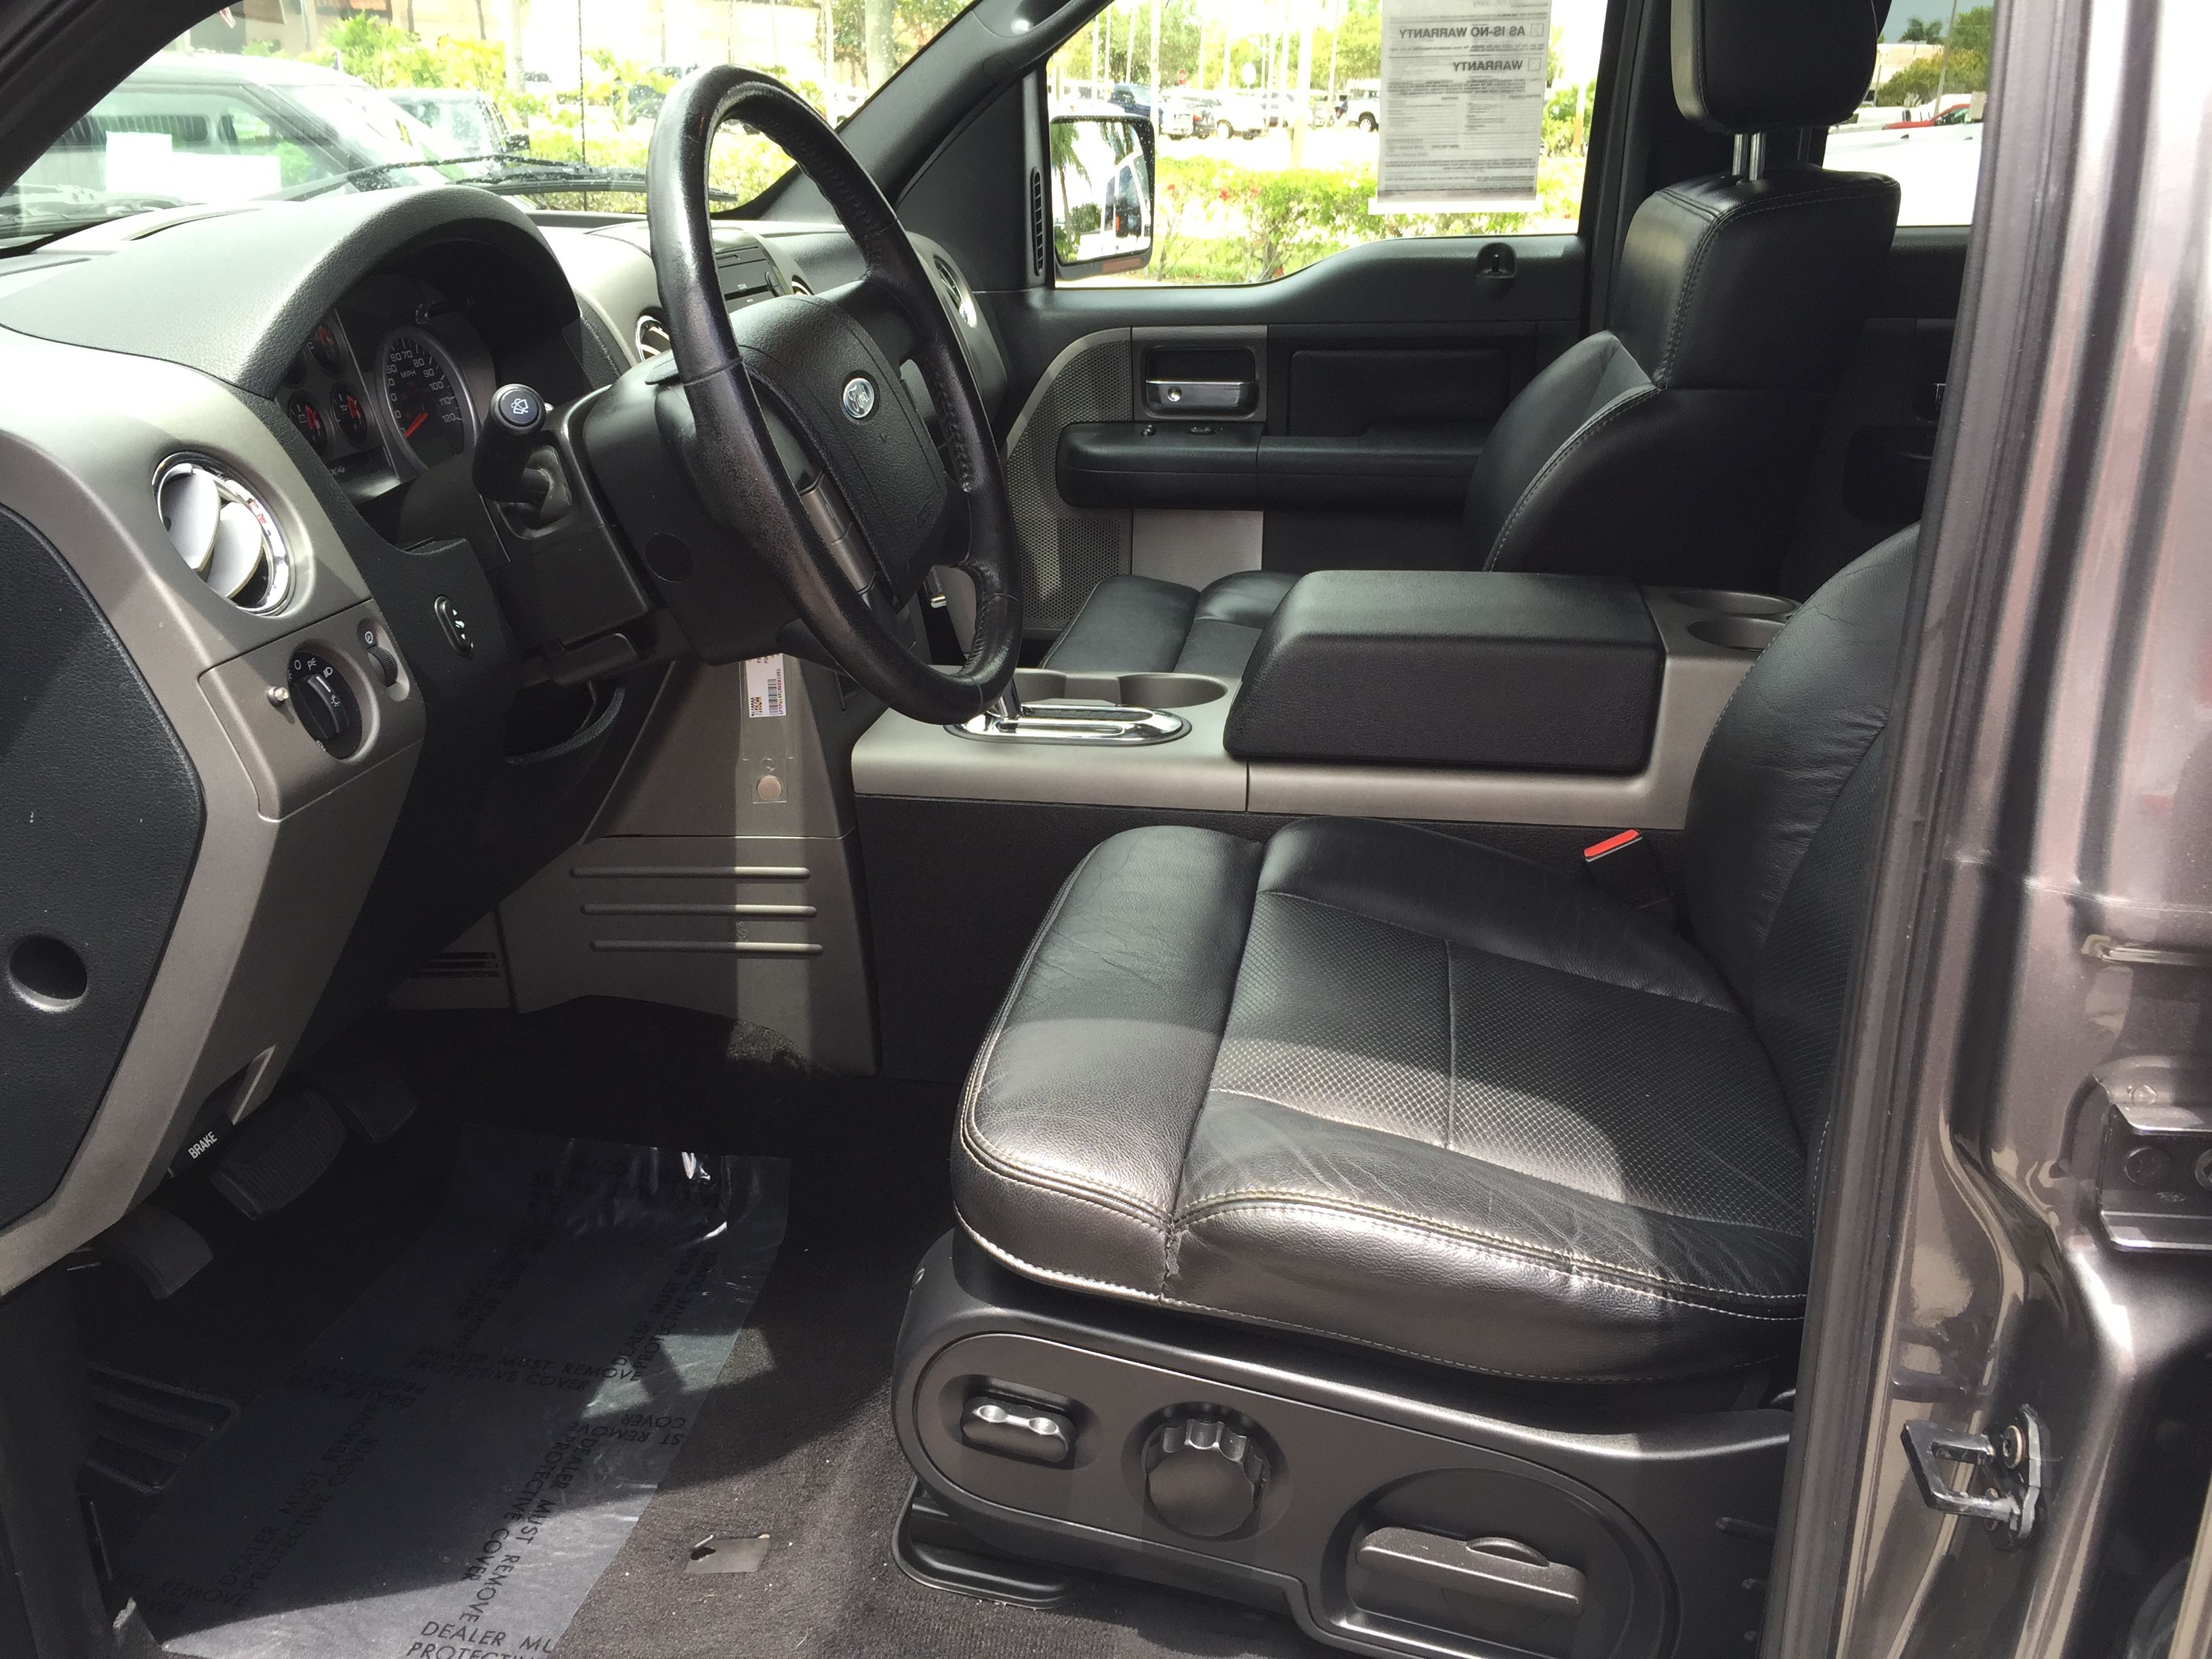 2005 Ford F 150 FX4 Interior, Power Seats Nice Design